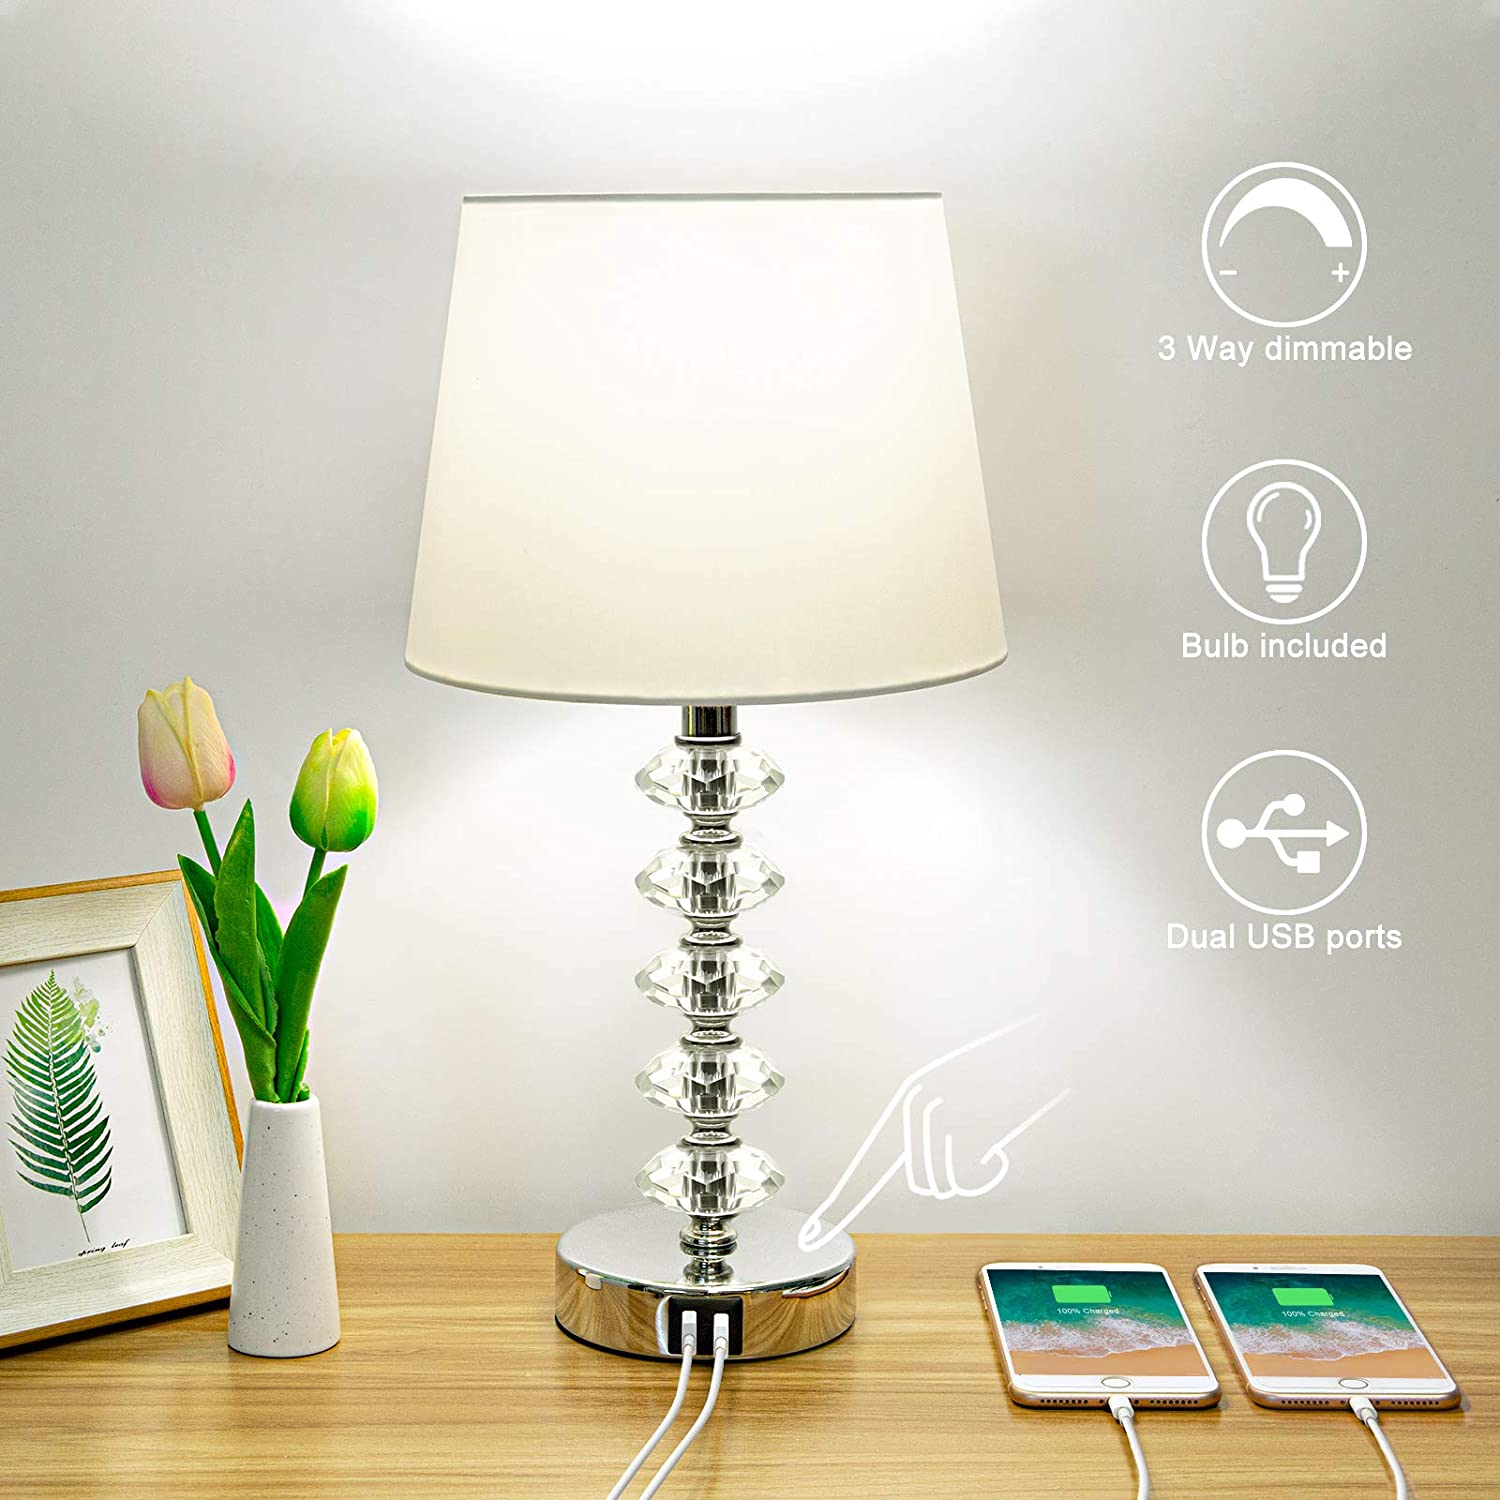 Touch Control Table Lamp with 2 3 Online limited Genuine Free Shipping product Ports USB Boncoo Dimmable Way